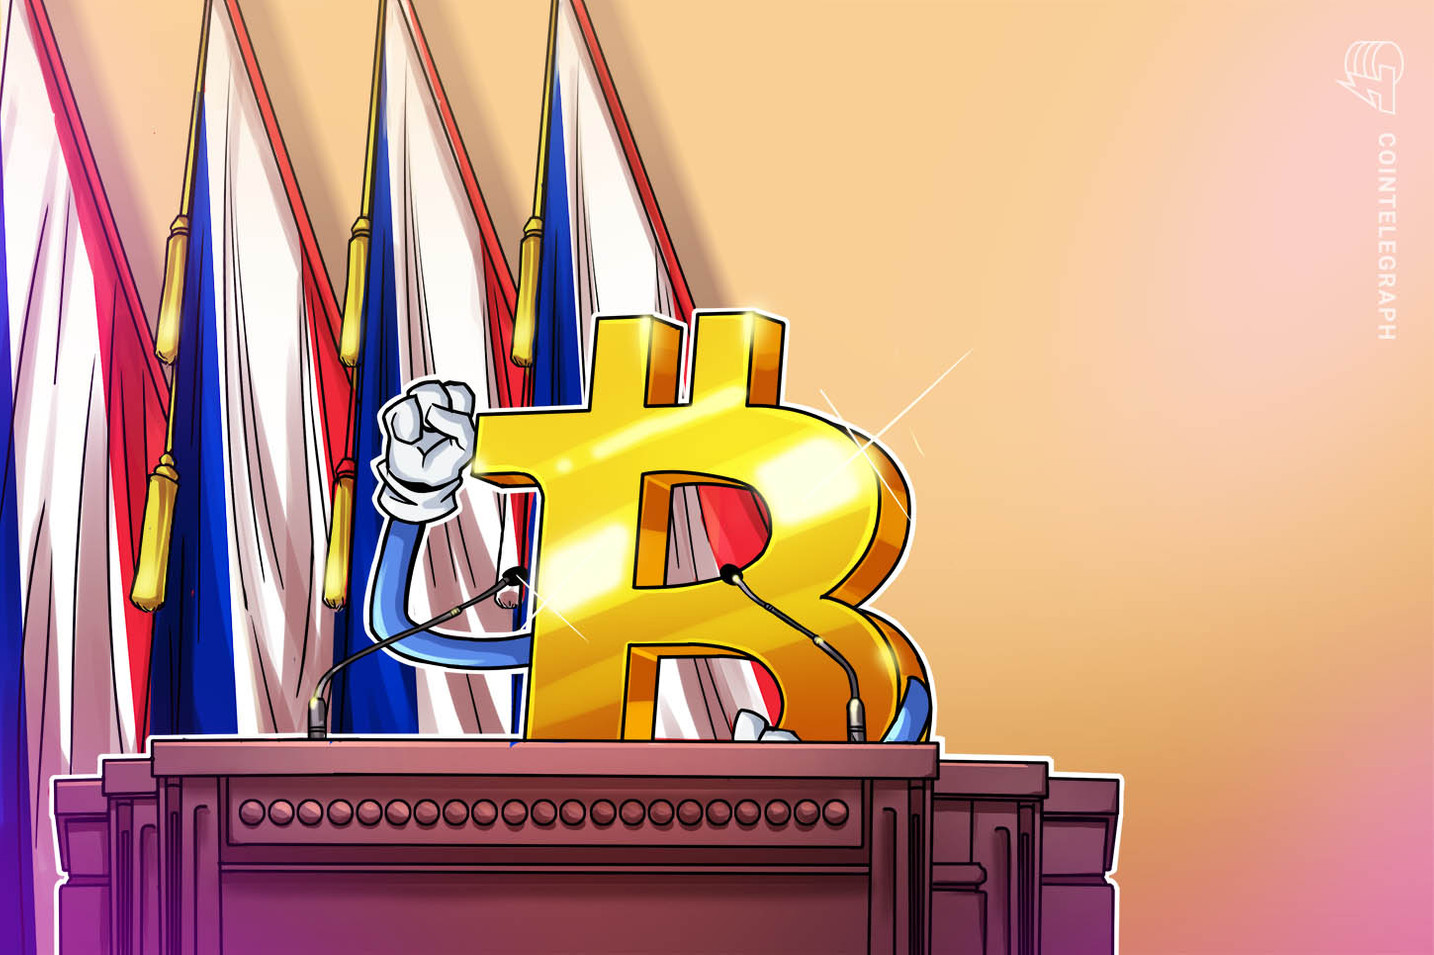 French Commerce Court Likens Bitcoin to Currency in Recent Ruling